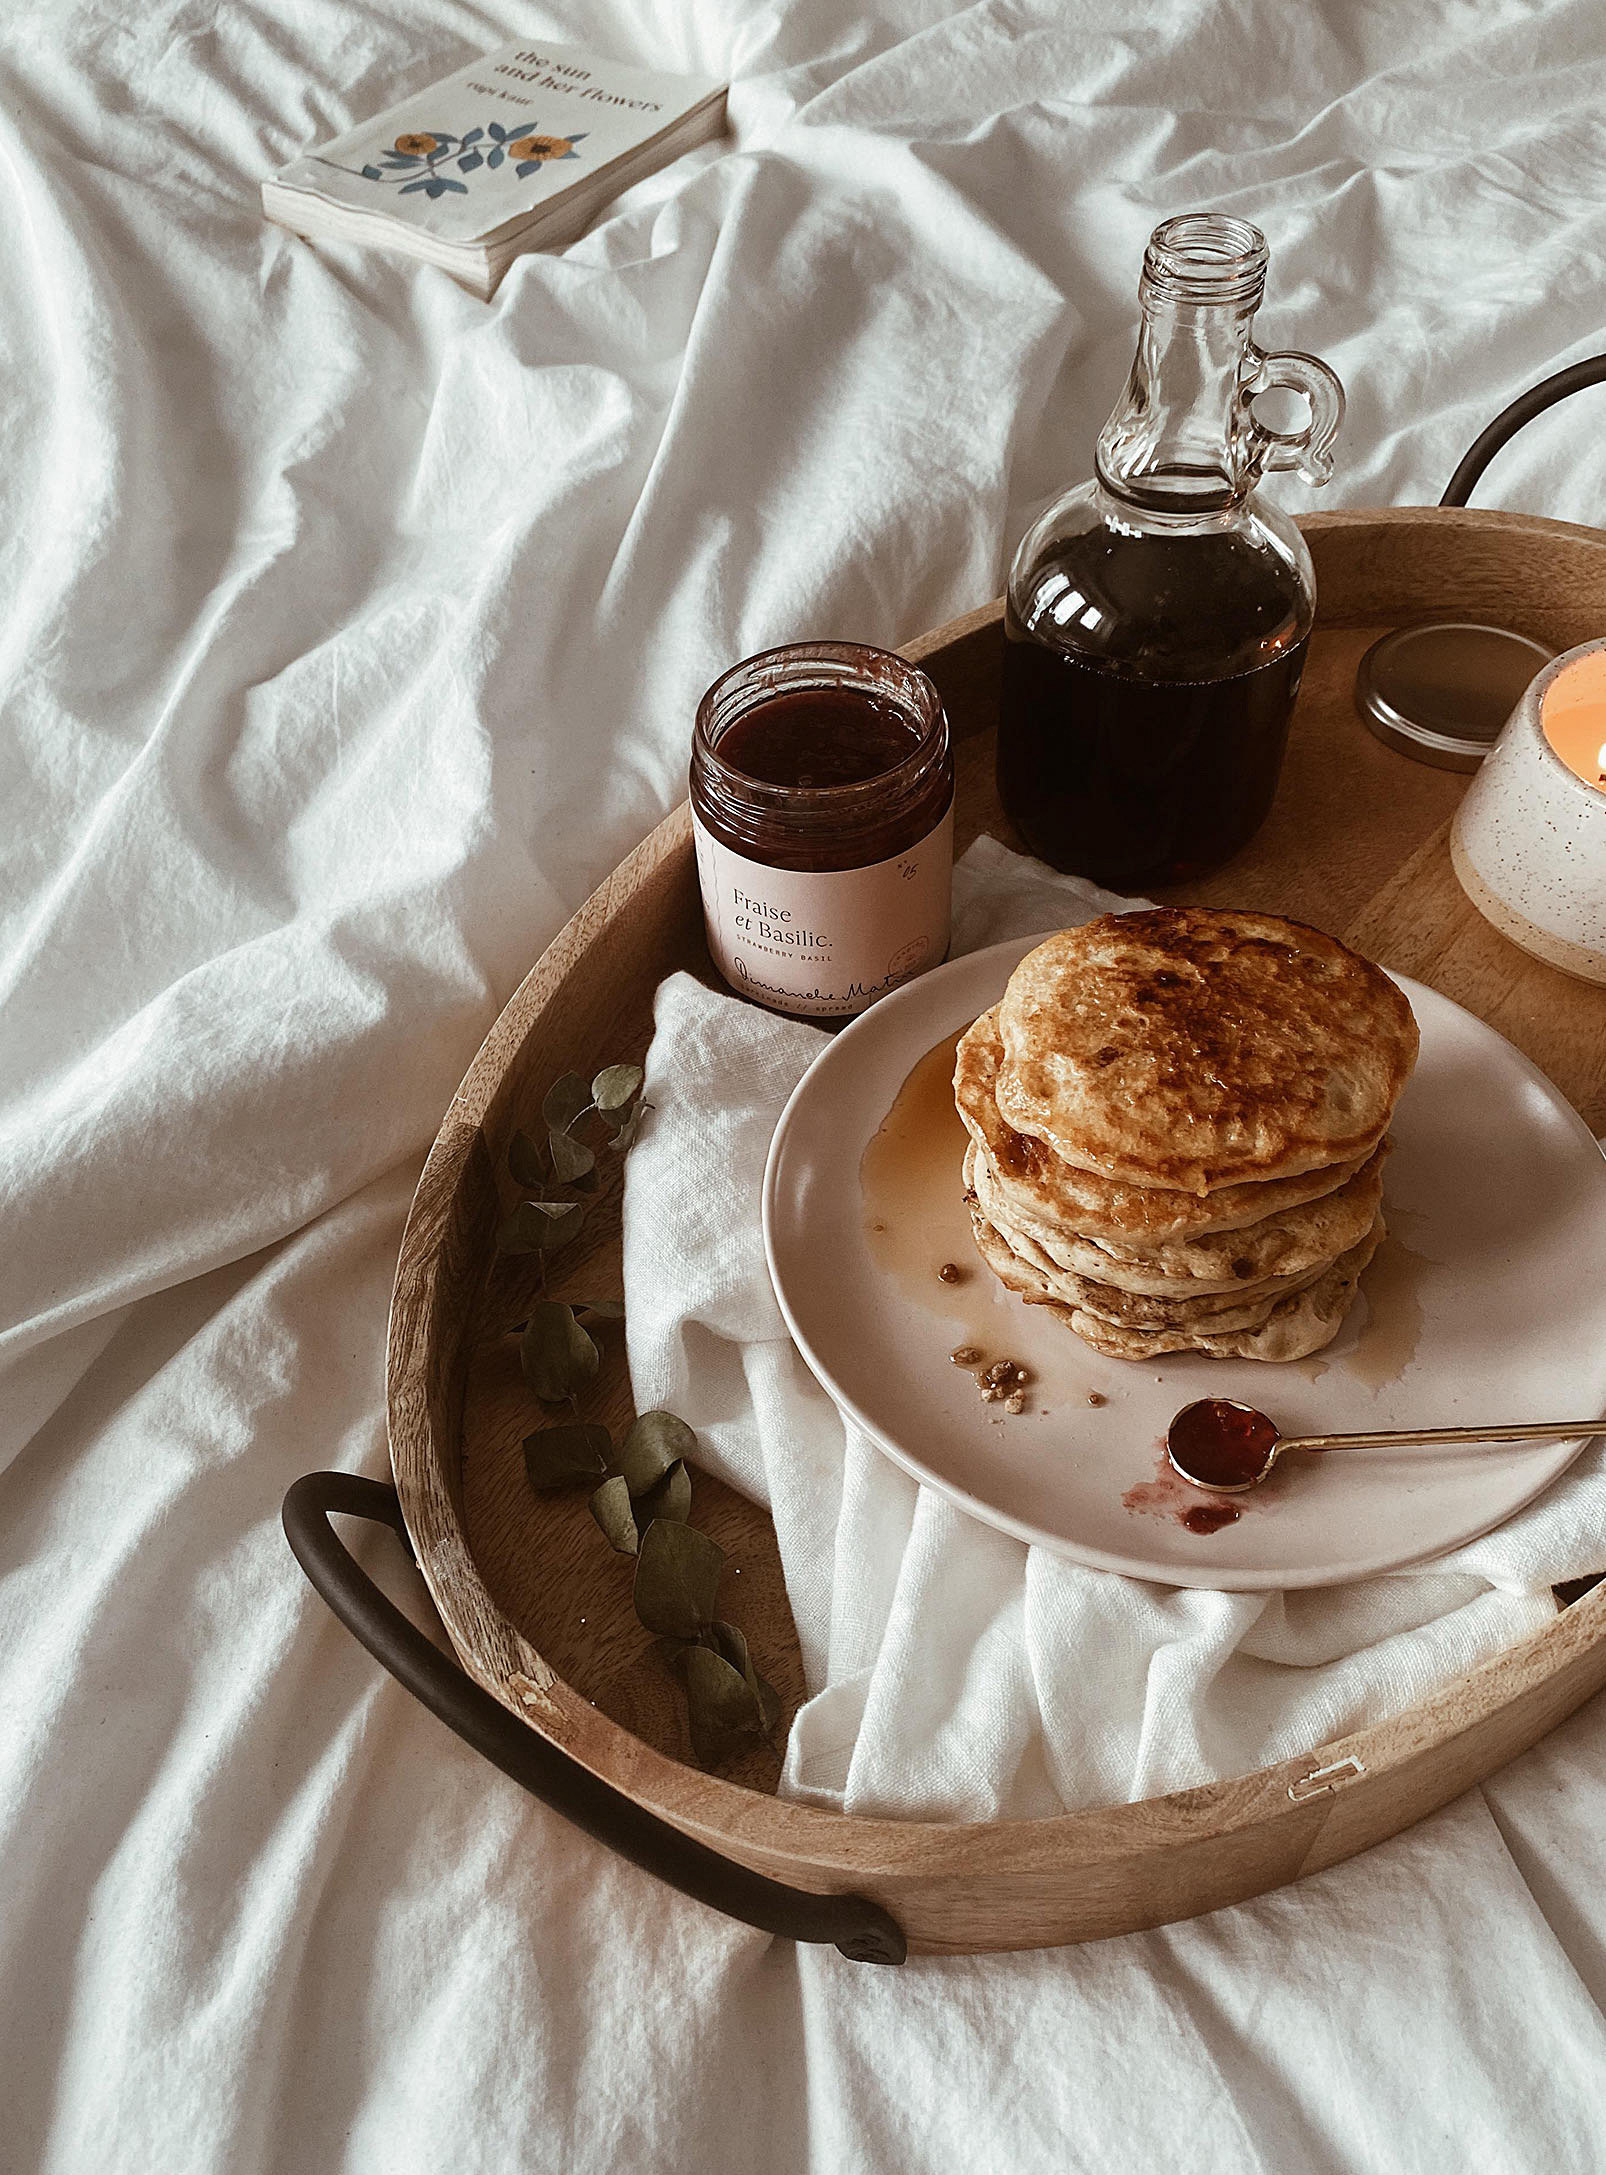 A wooden tray with a plate of pancakes and a jar of jam